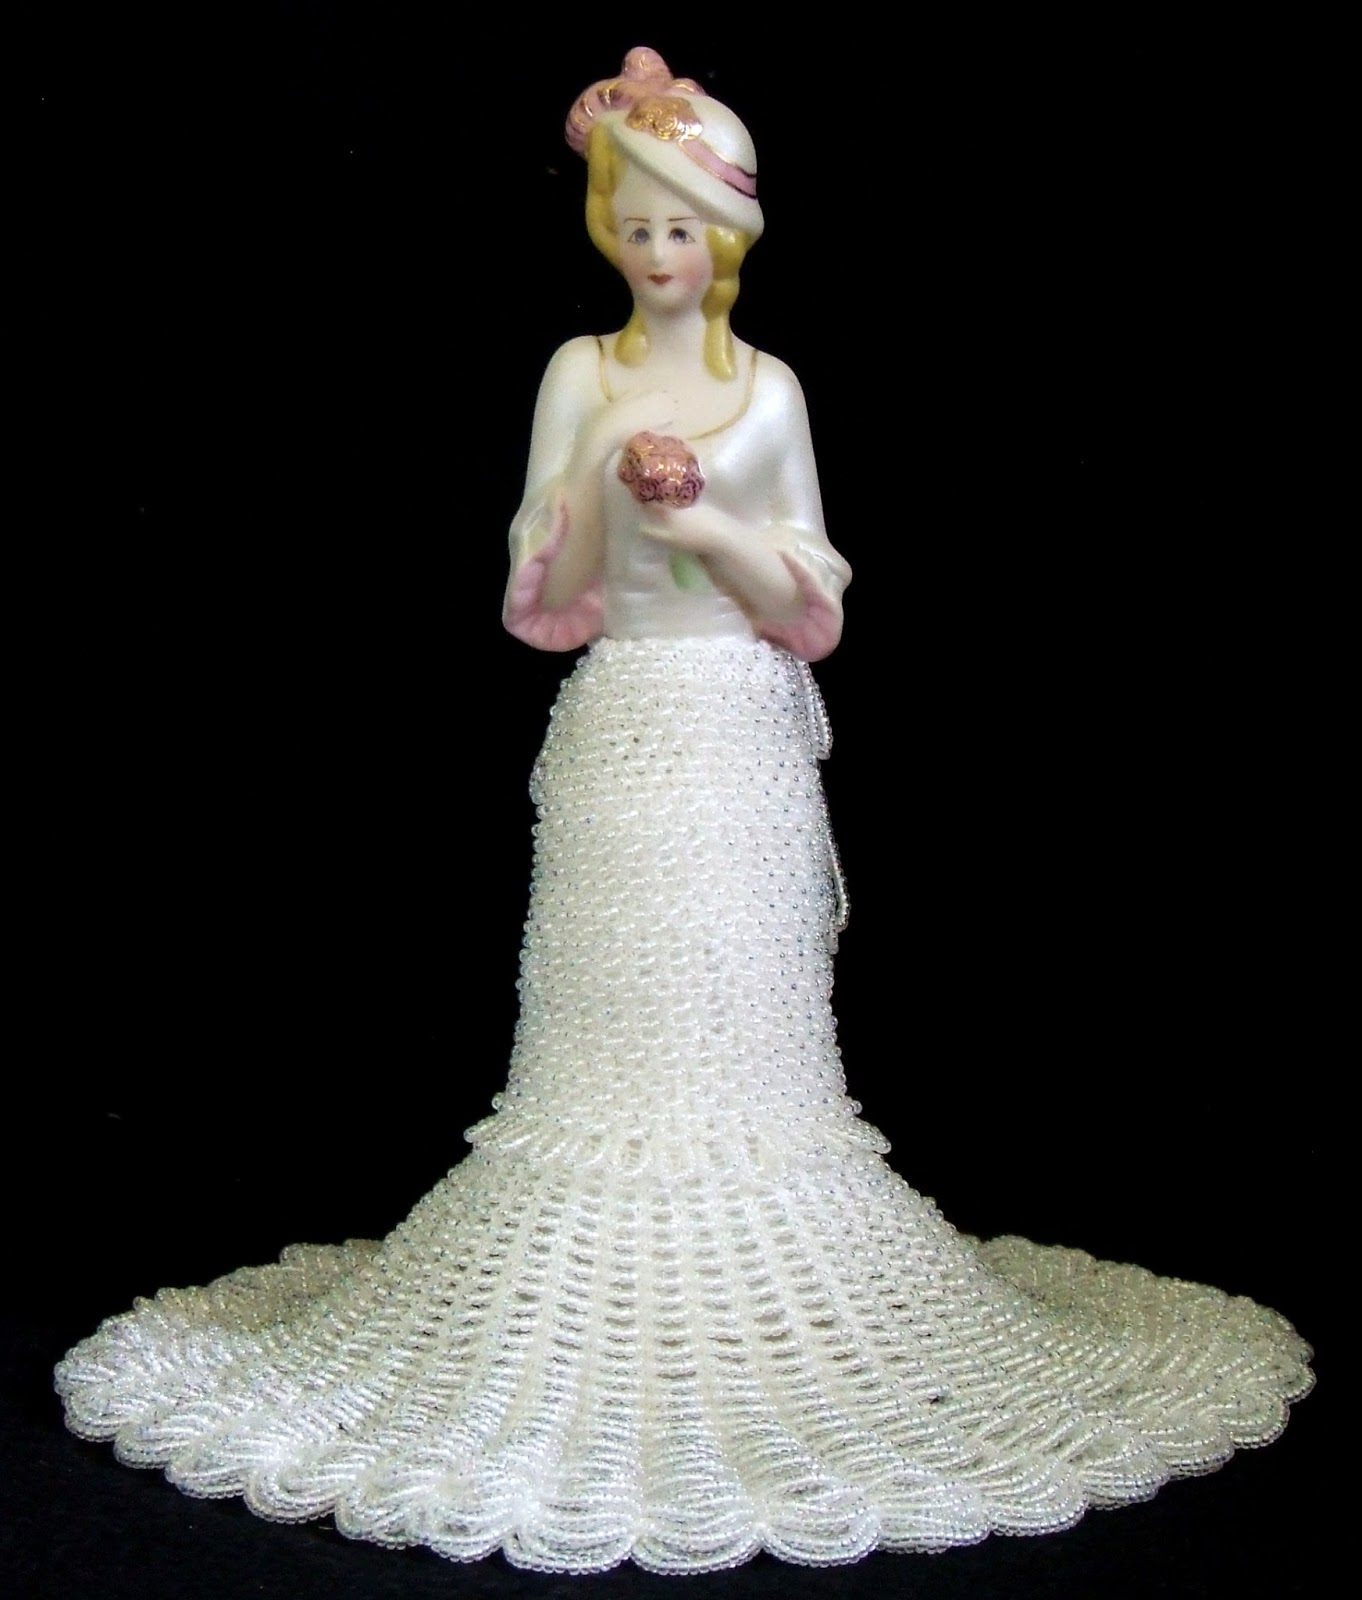 Beaded Knitting Patterns Half Dolls : Beading Belles: Half Doll Camilla and the Wedding Party